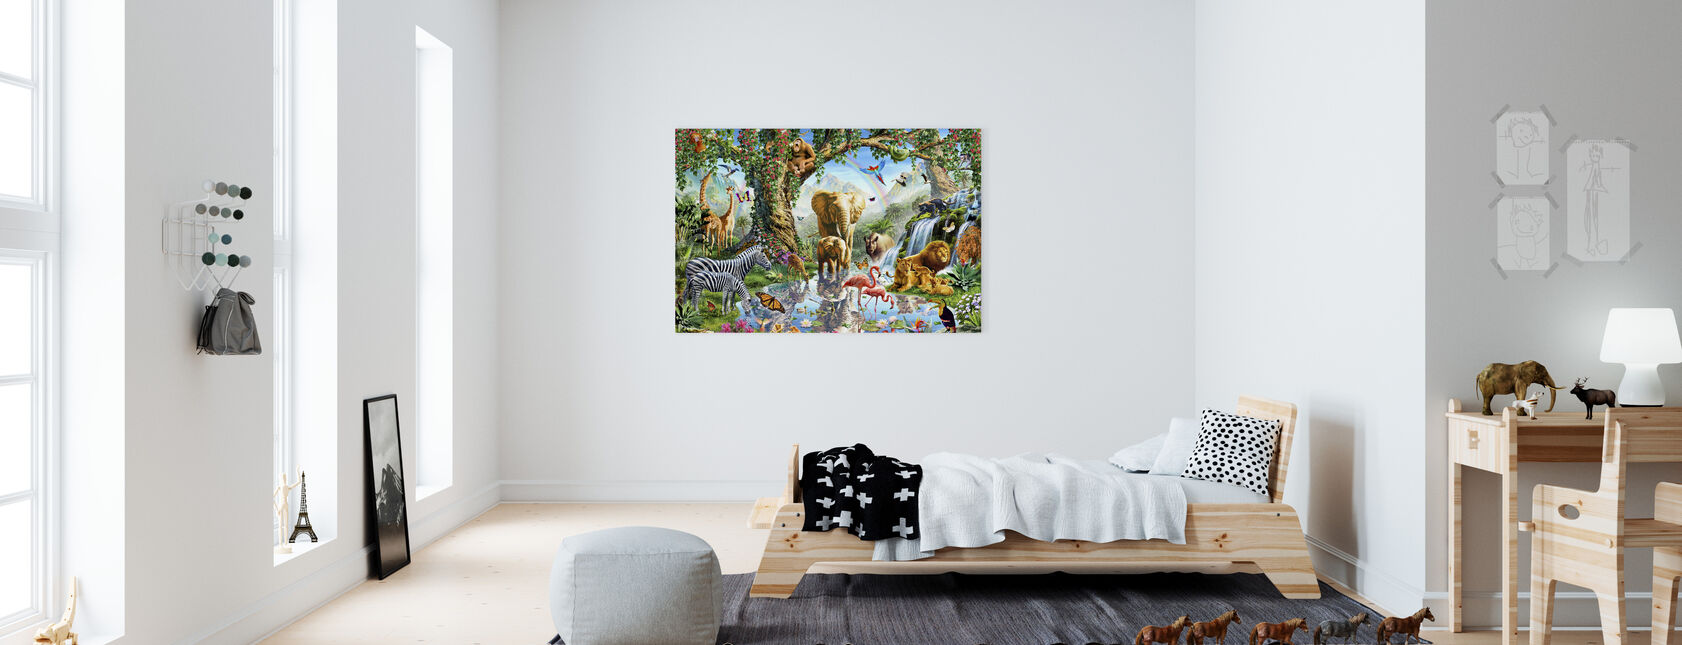 Jungle Lake met wilde dieren - Canvas print - Kinderkamer